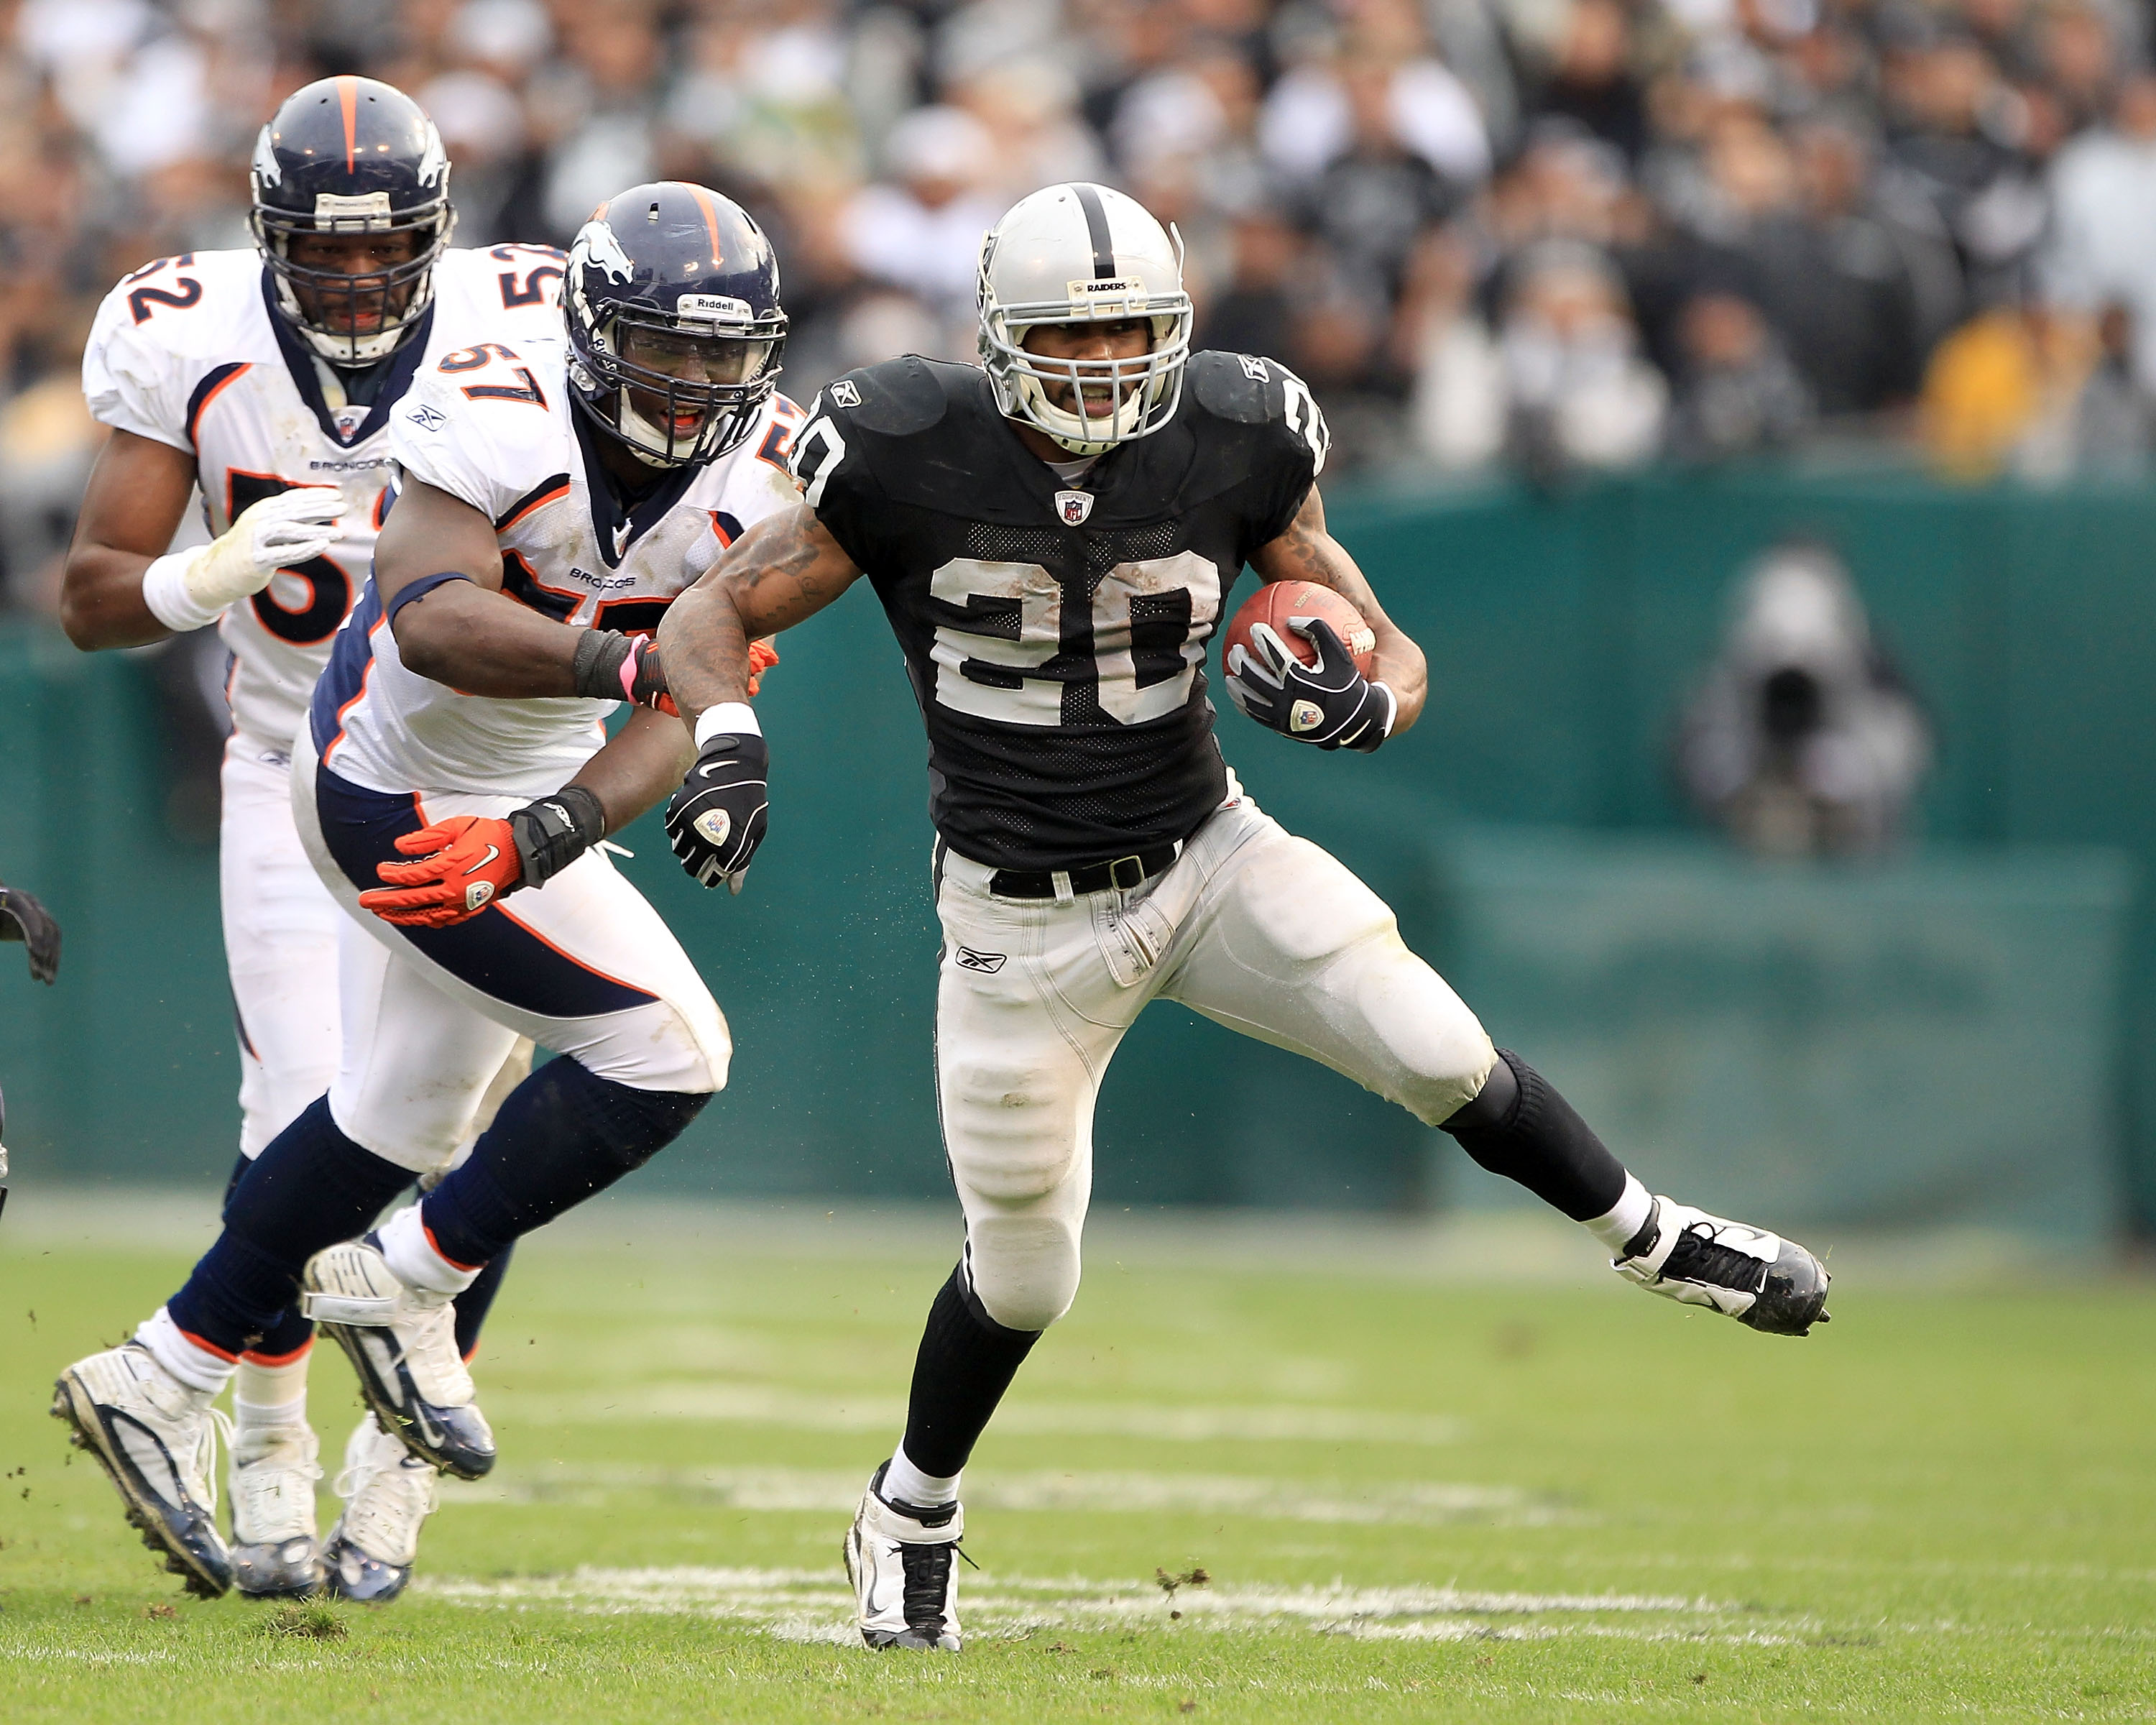 OAKLAND, CA - DECEMBER 19:  Darren McFadden #20 of the Oakland Raiders runs with the ball during their game against the Denver Broncos at Oakland-Alameda County Coliseum on December 19, 2010 in Oakland, California.  (Photo by Ezra Shaw/Getty Images)